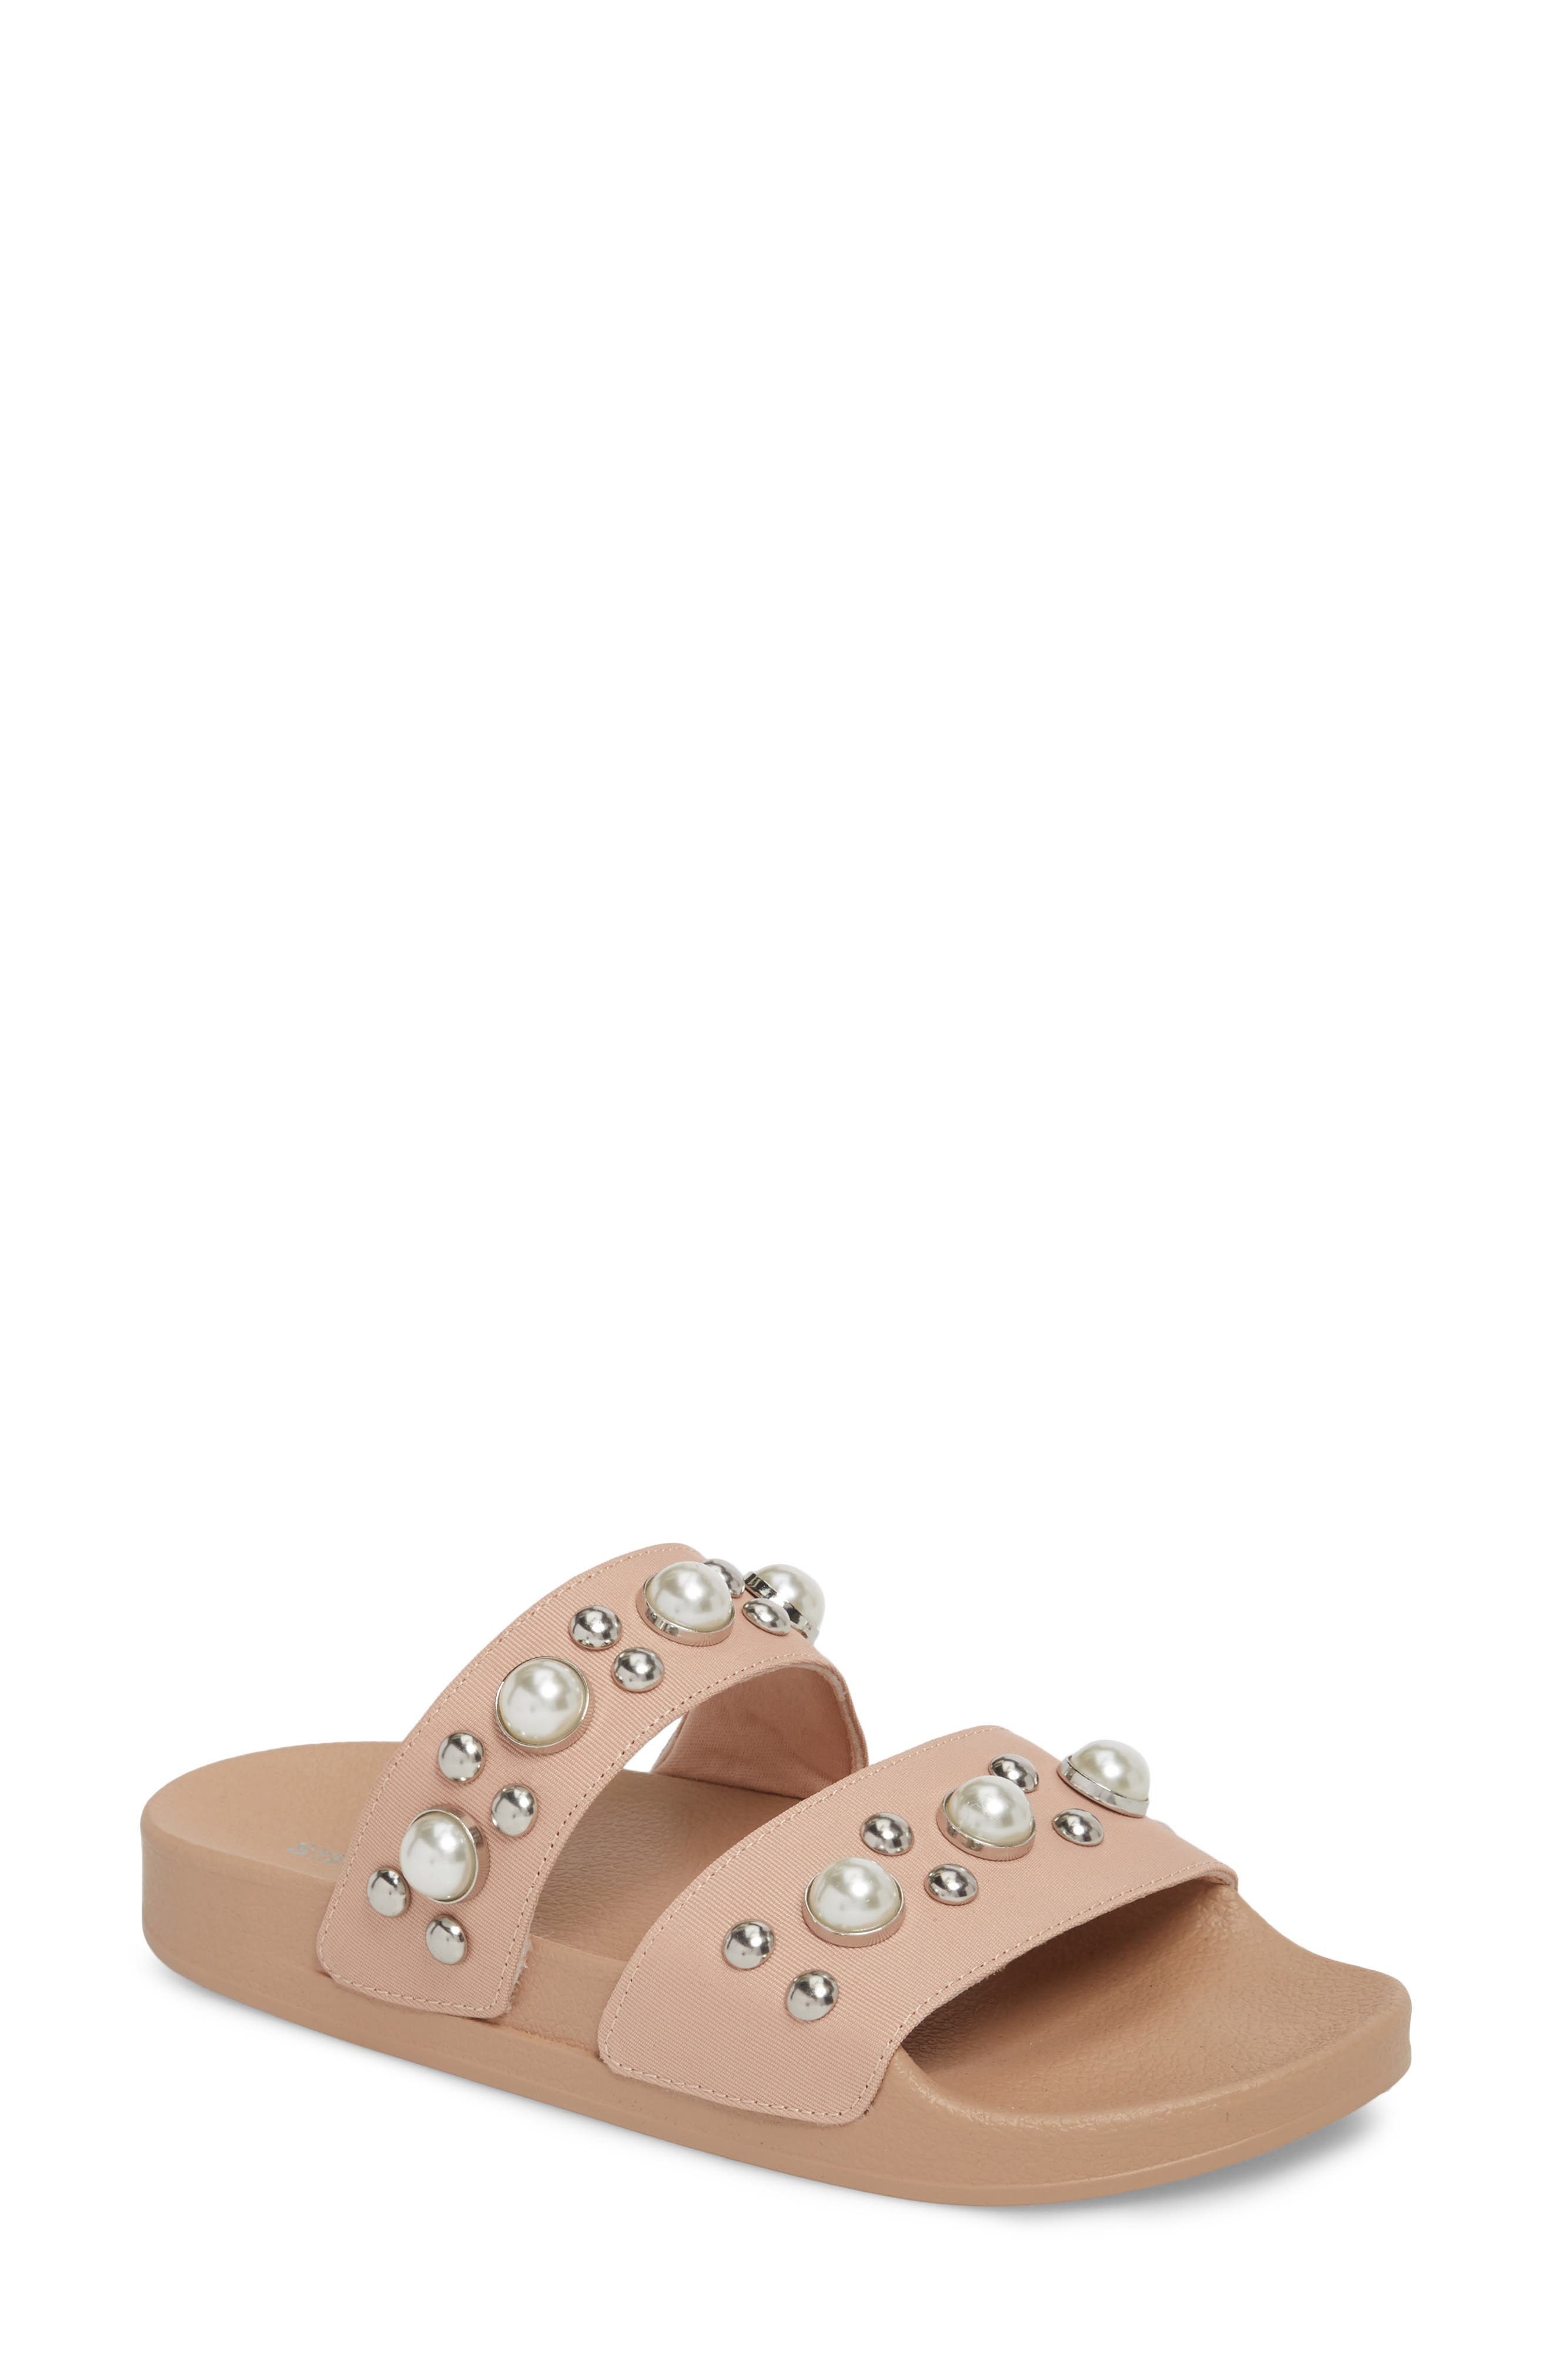 Polite Embellished Slide Sandal,                             Main thumbnail 1, color,                             Blush